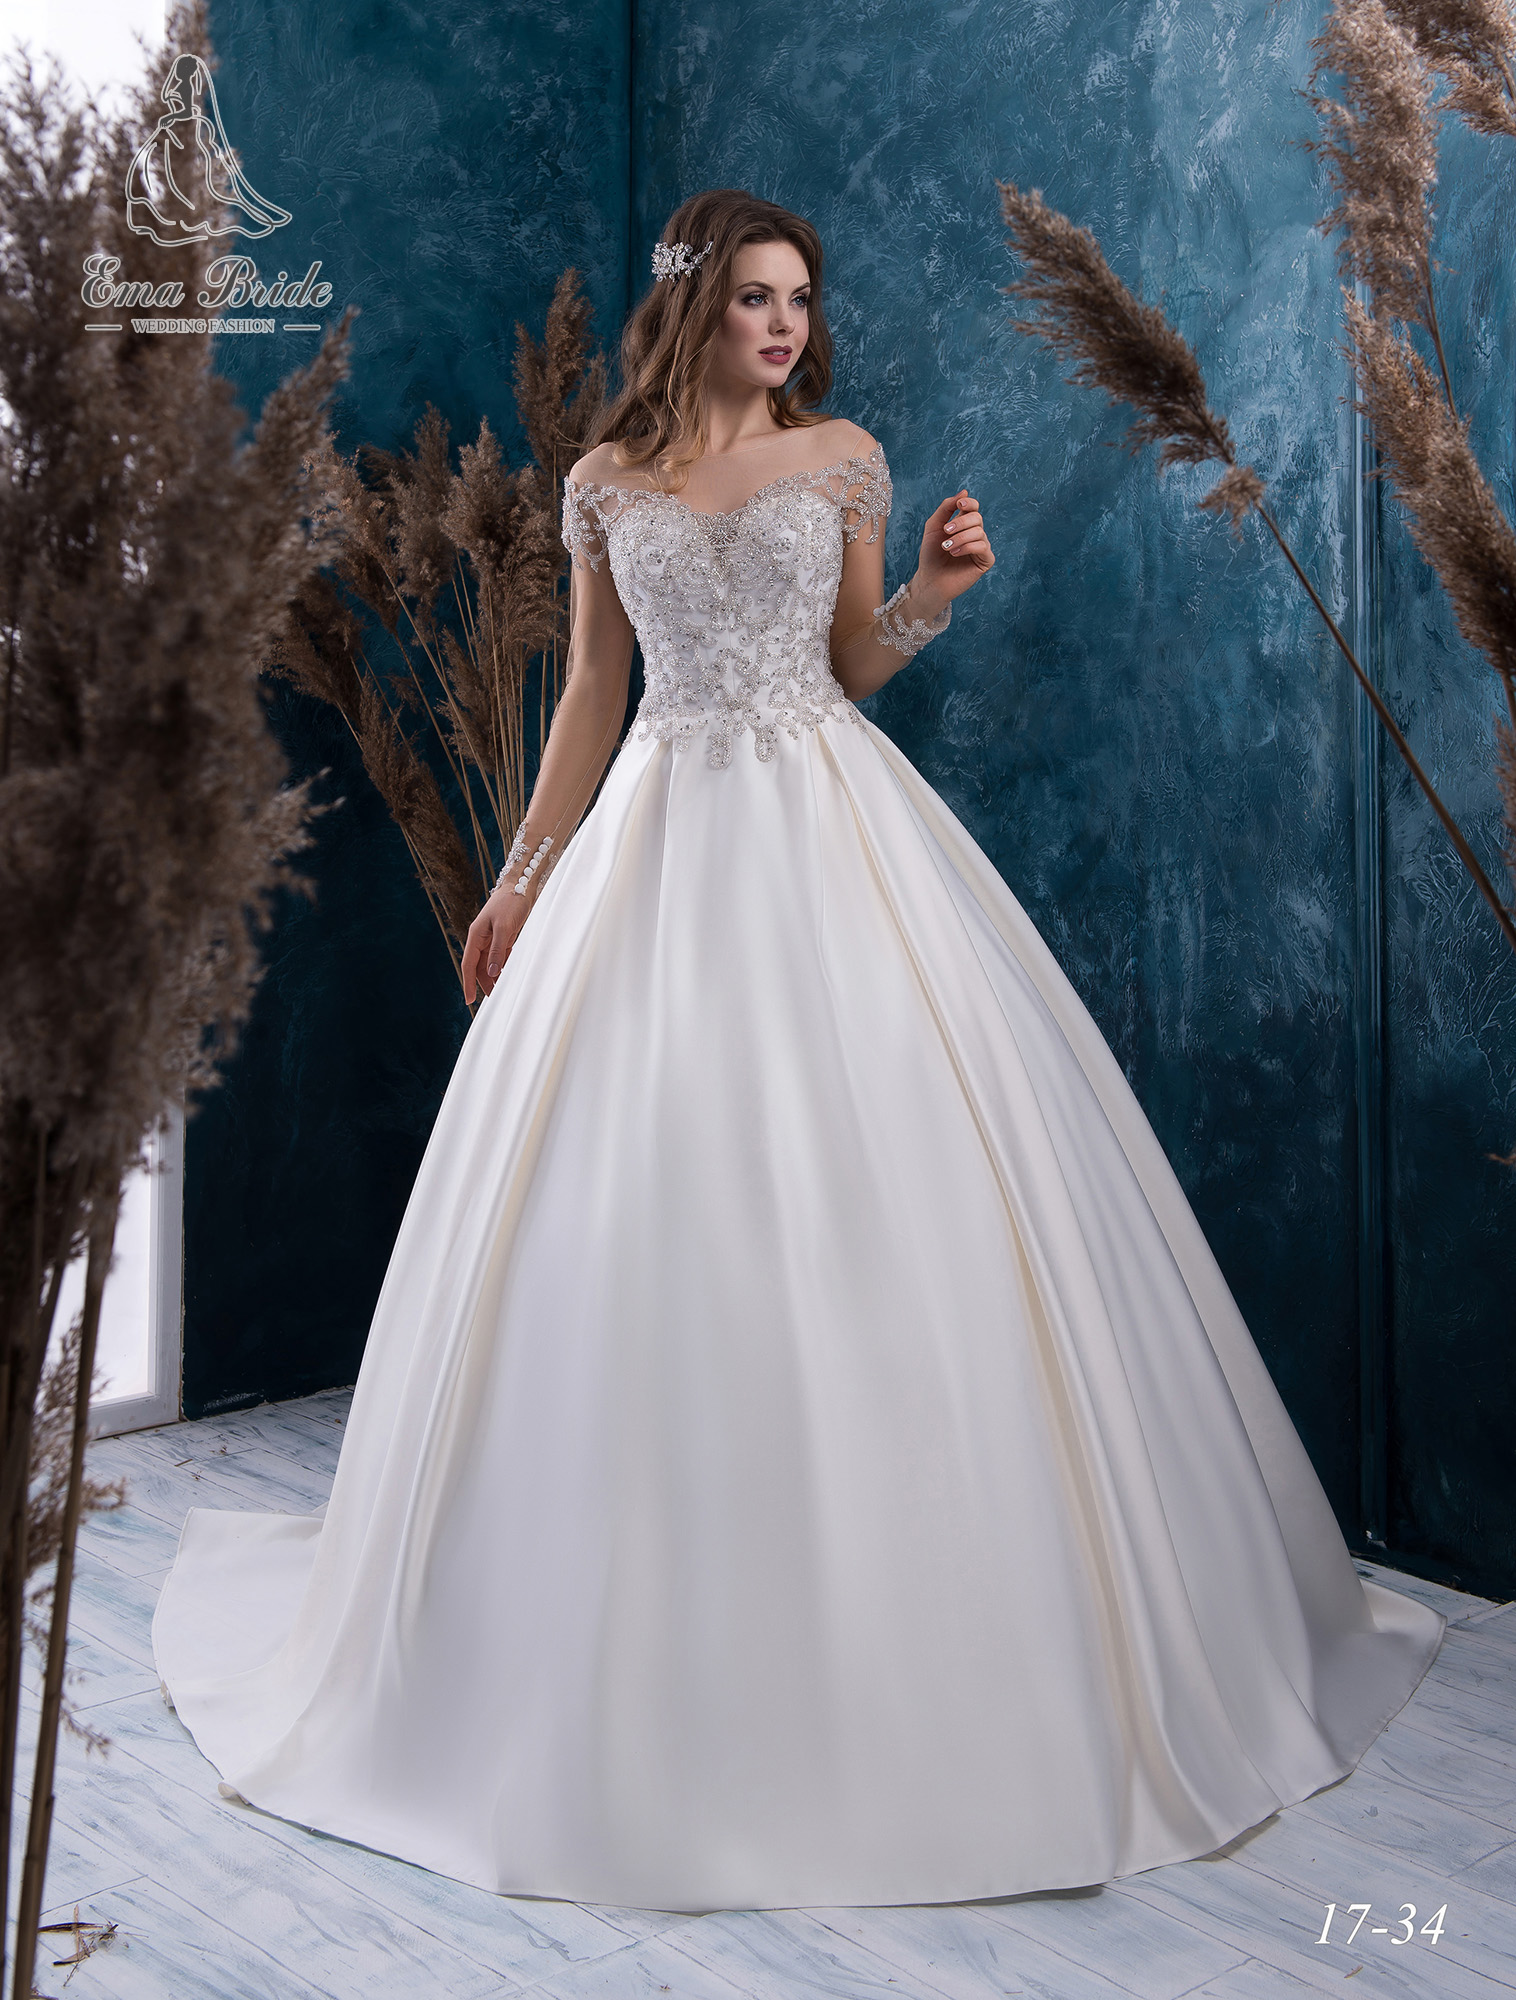 Wedding dress 17-34 wholesale